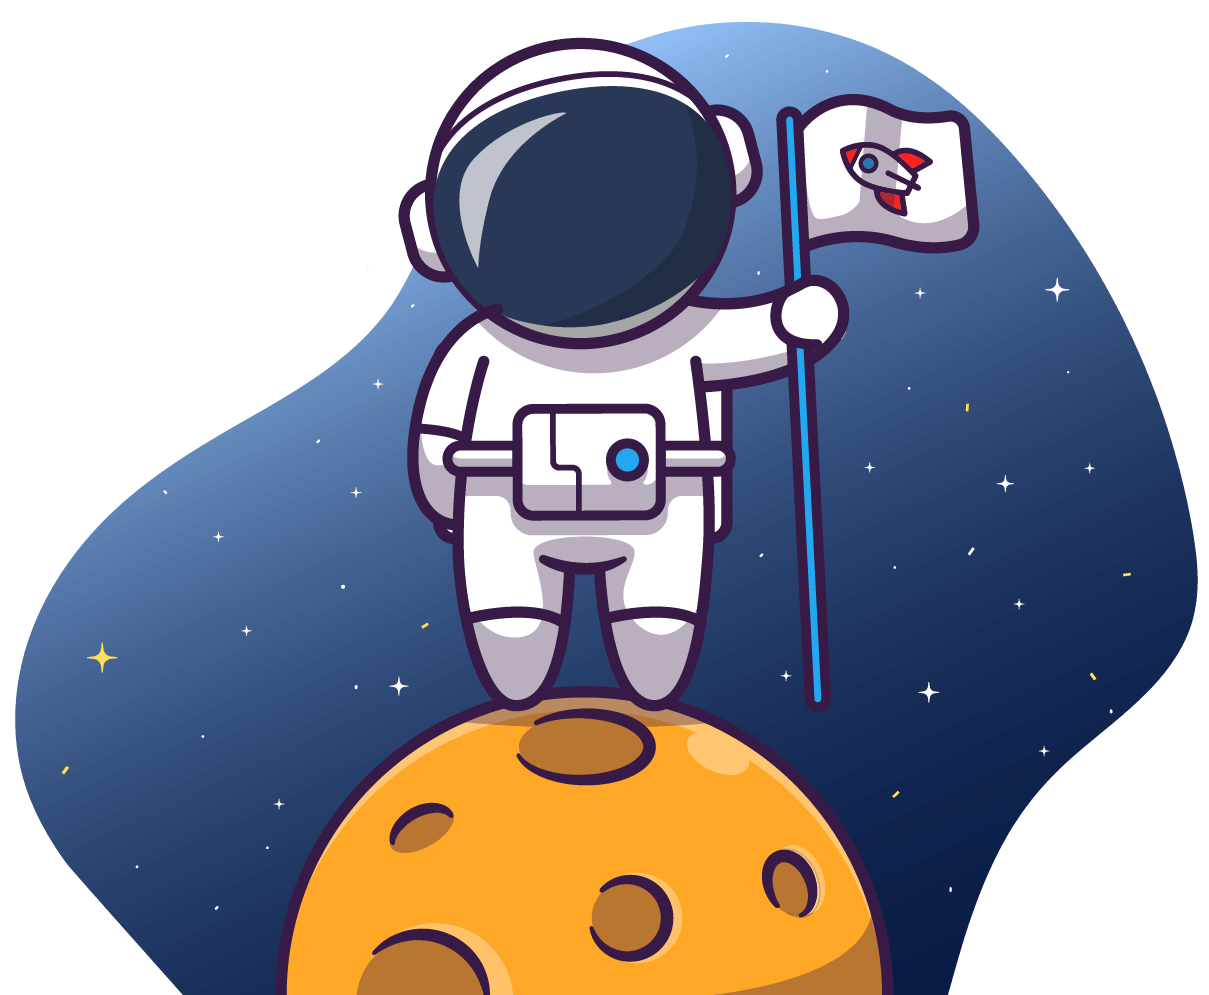 illustrated astronaut holding flag and standing on moon